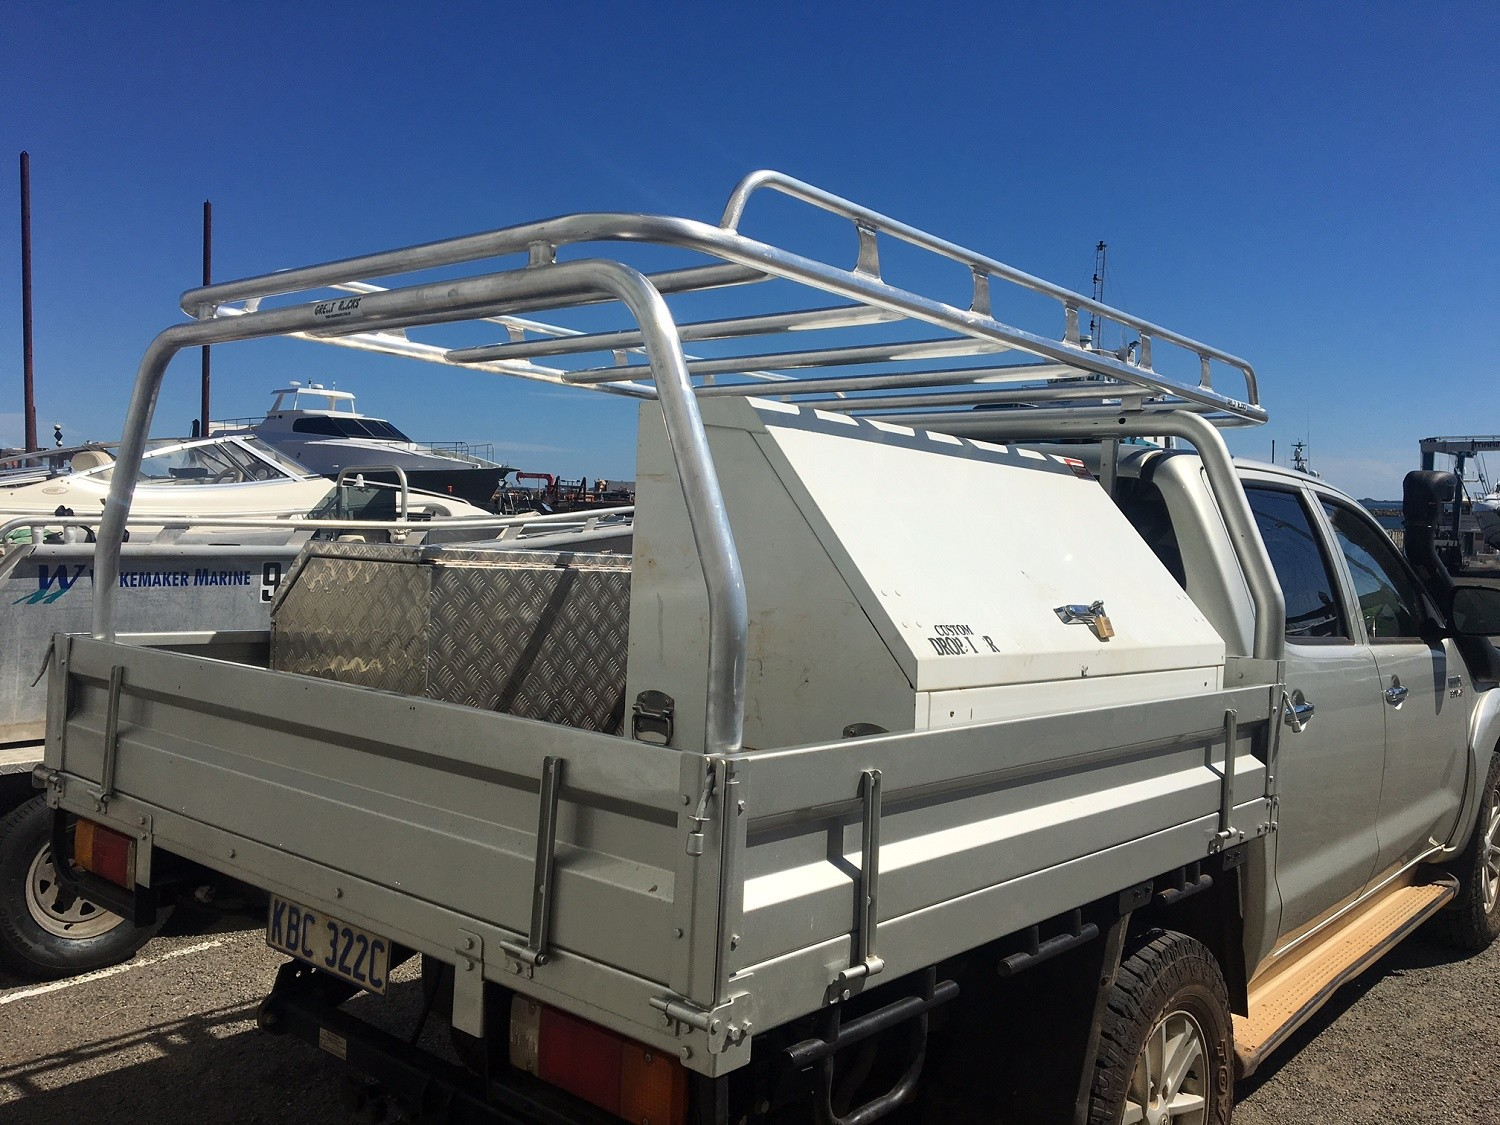 Hilux Roof Racks Toyota Hilux Great Racks